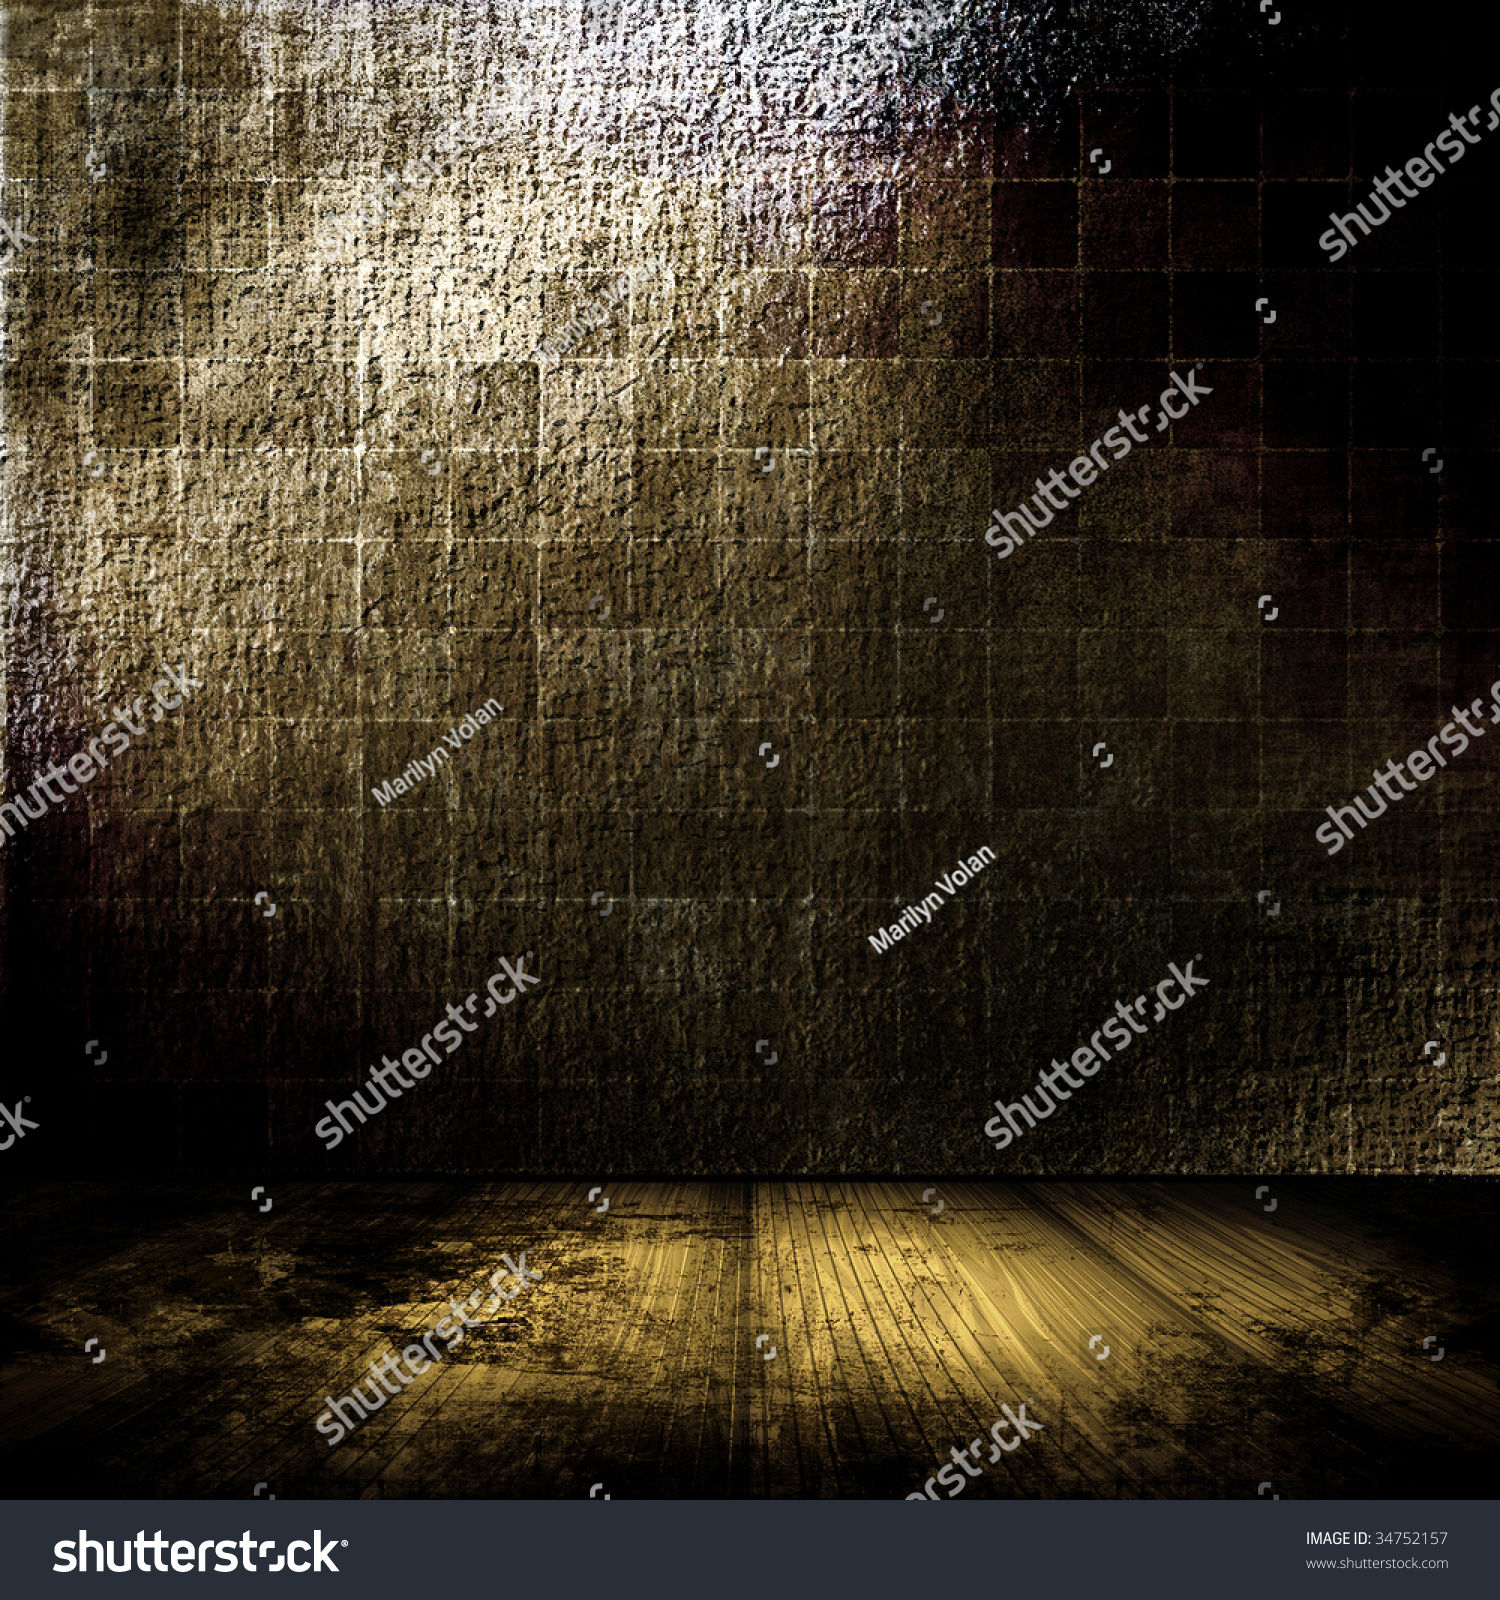 Sad Tumblr Quotes About Love: Dark Grunge Room Stock Photo 34752157 : Shutterstock